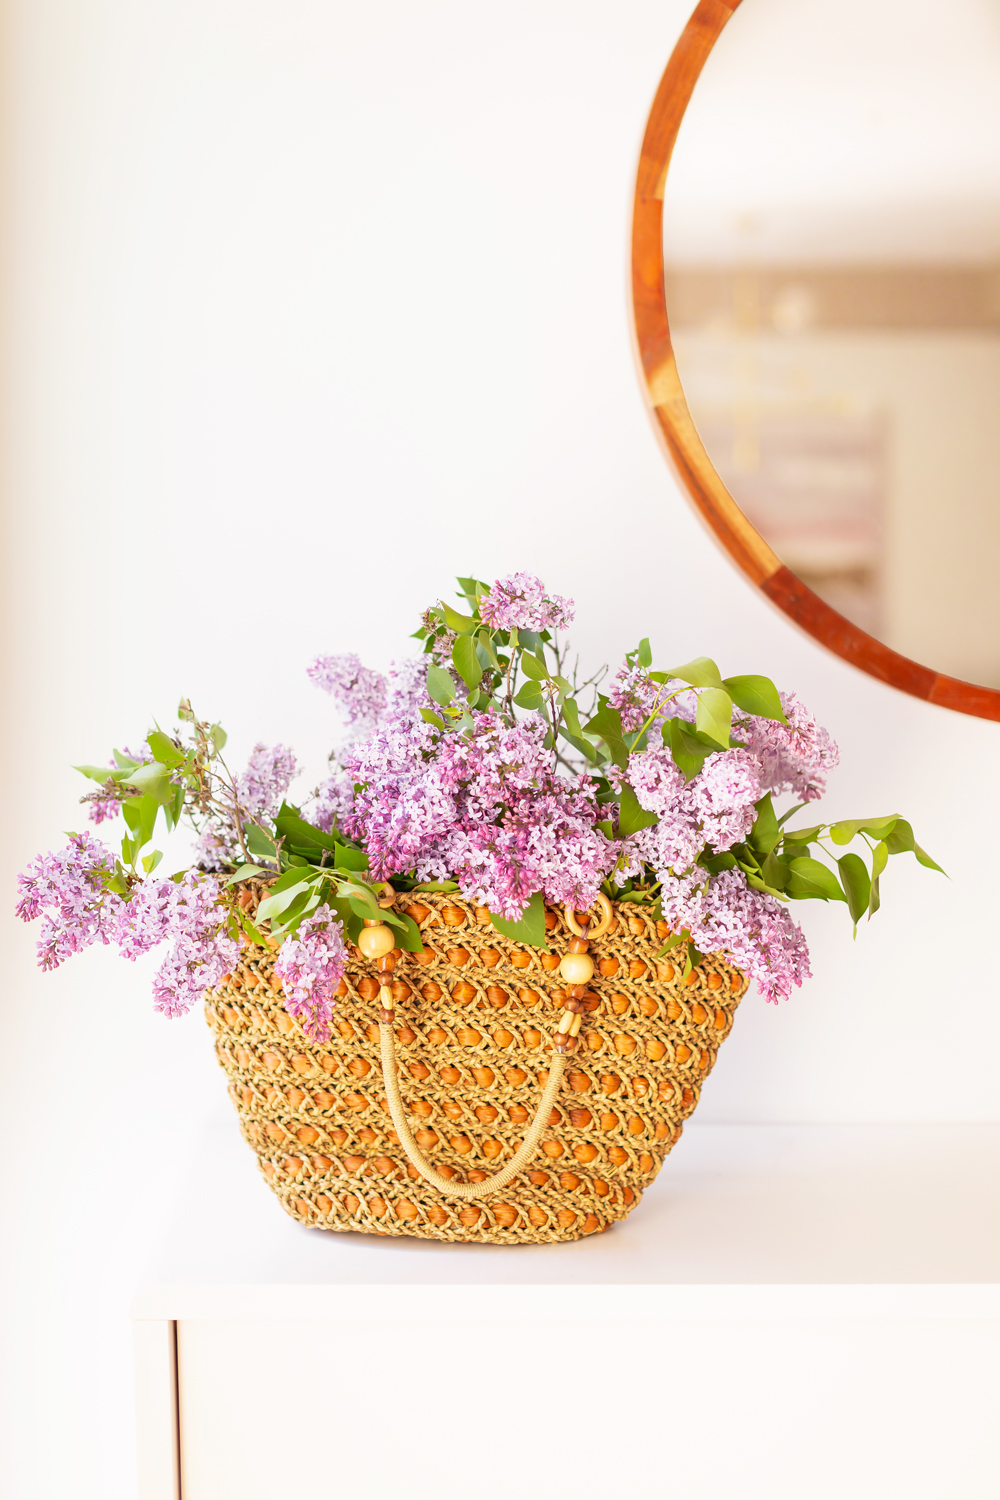 A vintage rattan tote bag overflowing with blooming lilac branches in JustineCelina's light and airy mid century meets boho modern living room | DIY Lilac Flower Arrangement | How to Forage Lilacs | How to Prolong Lilac Vase Life | How to Arrange Lilacs | Fresh Lilac Flower Bouquet | Extremely Pretty Lilac Arrangement | Purple Lilac Arrangement | How to Cut Lilacs from a tree or bush | Calgary Creative Lifestyle Blogger // JustineCelina.com